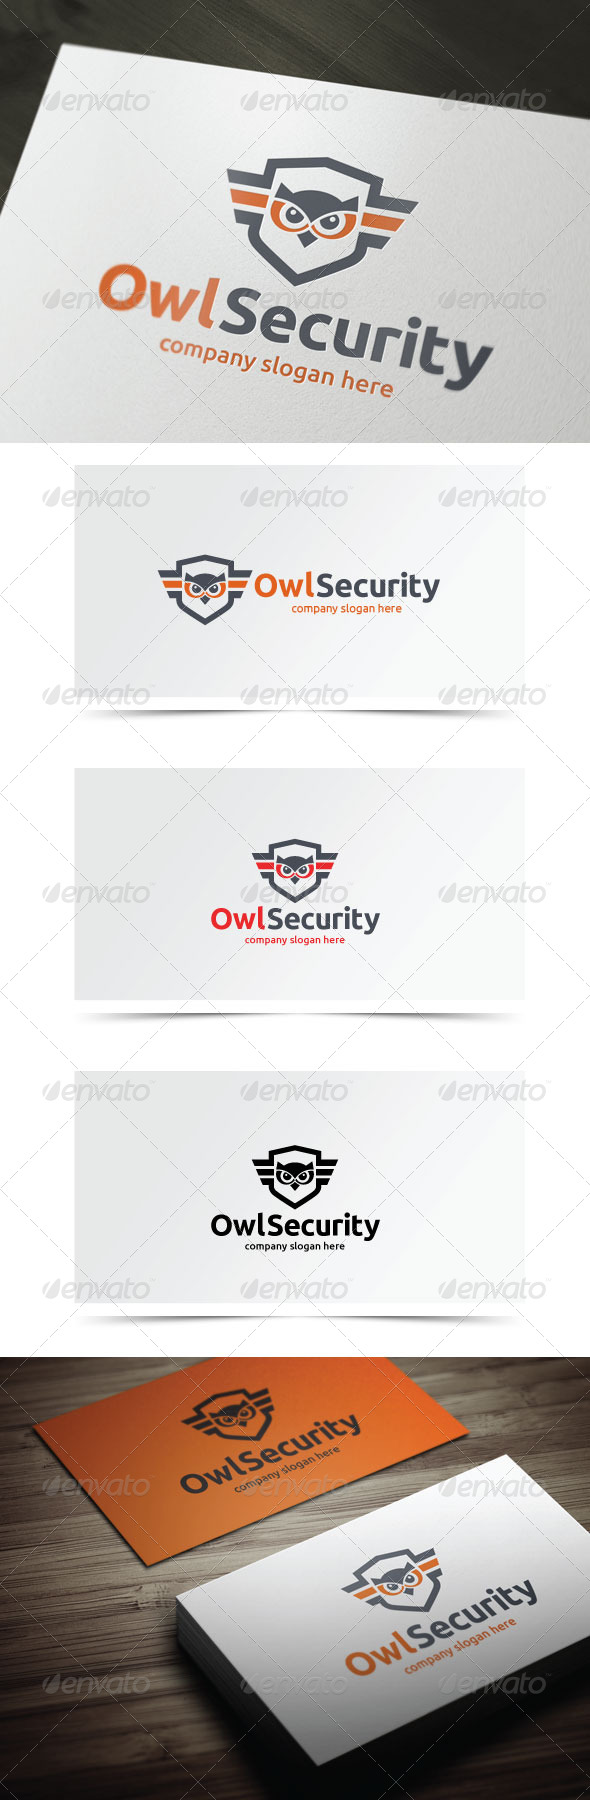 GraphicRiver Owl Security 6123916